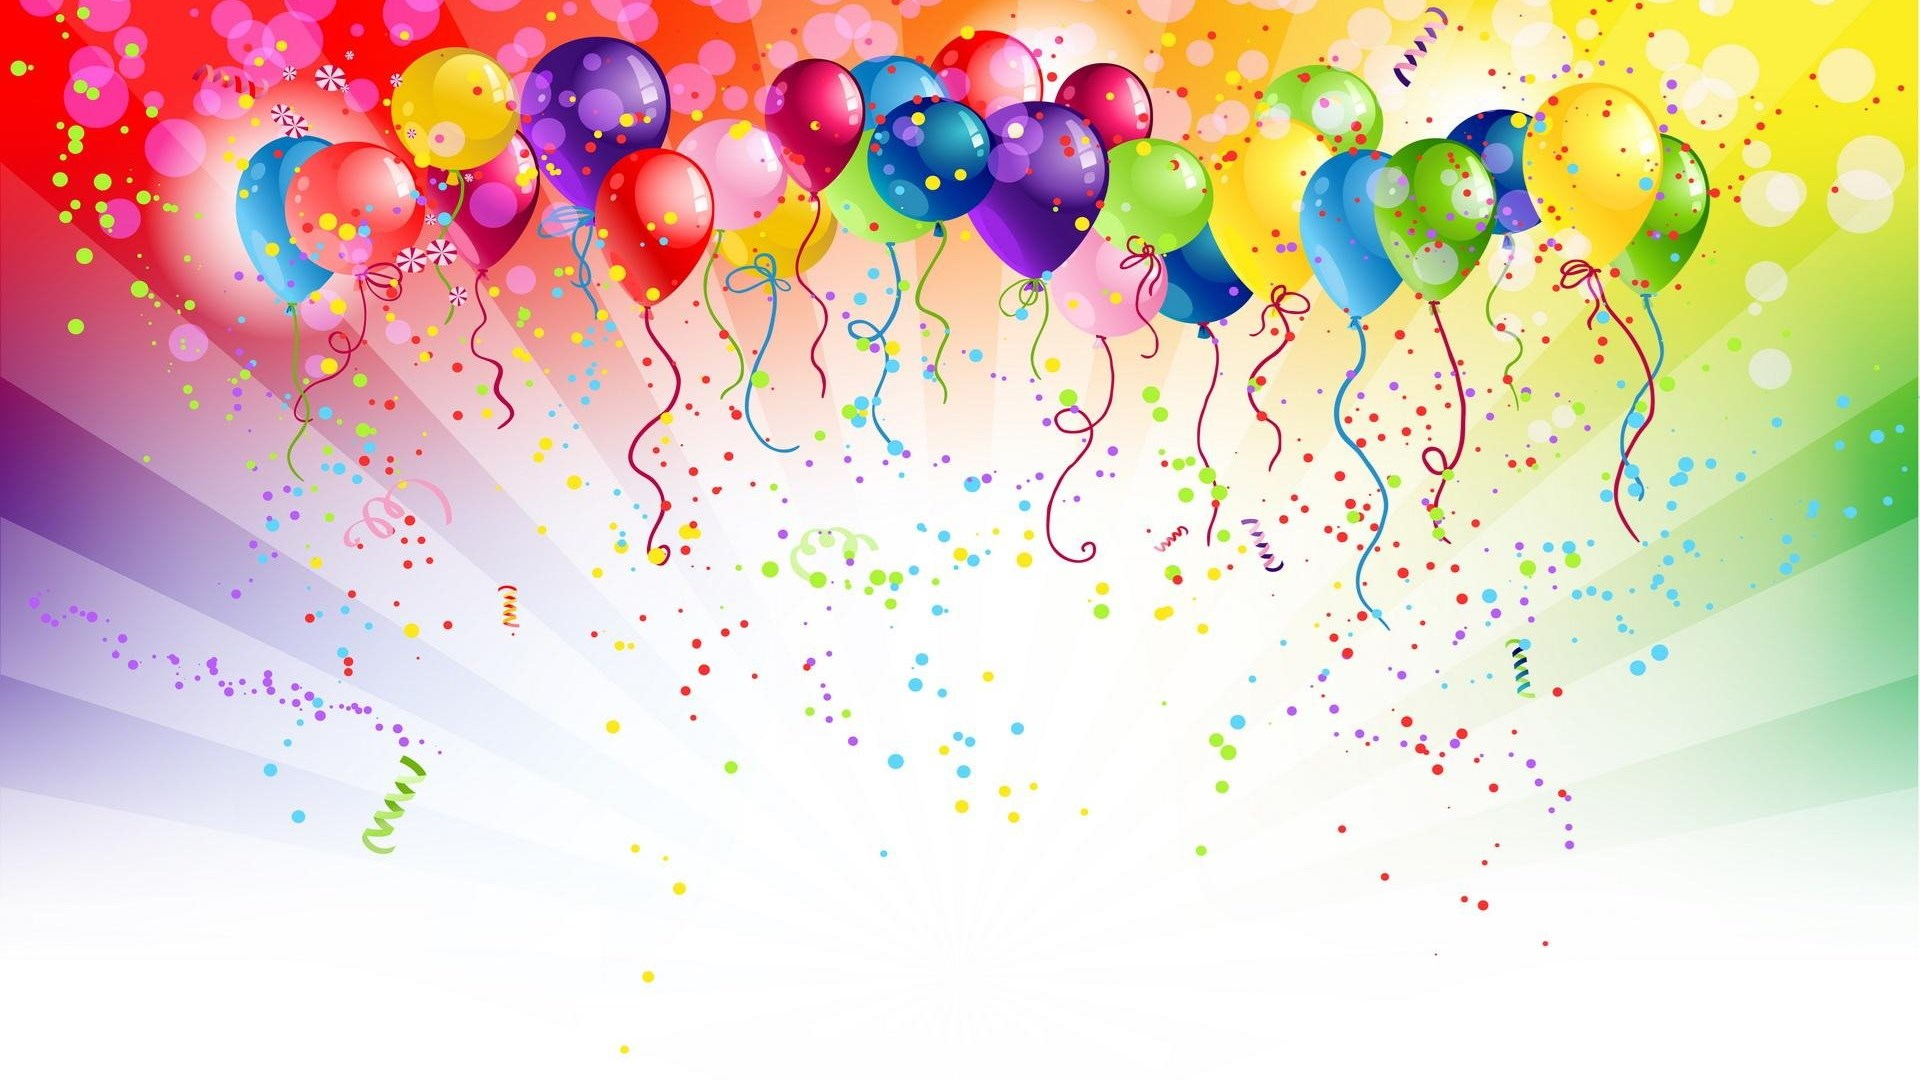 Birthday Balloons Images Nice And Hot ♡♥ Wishes Quotes ...